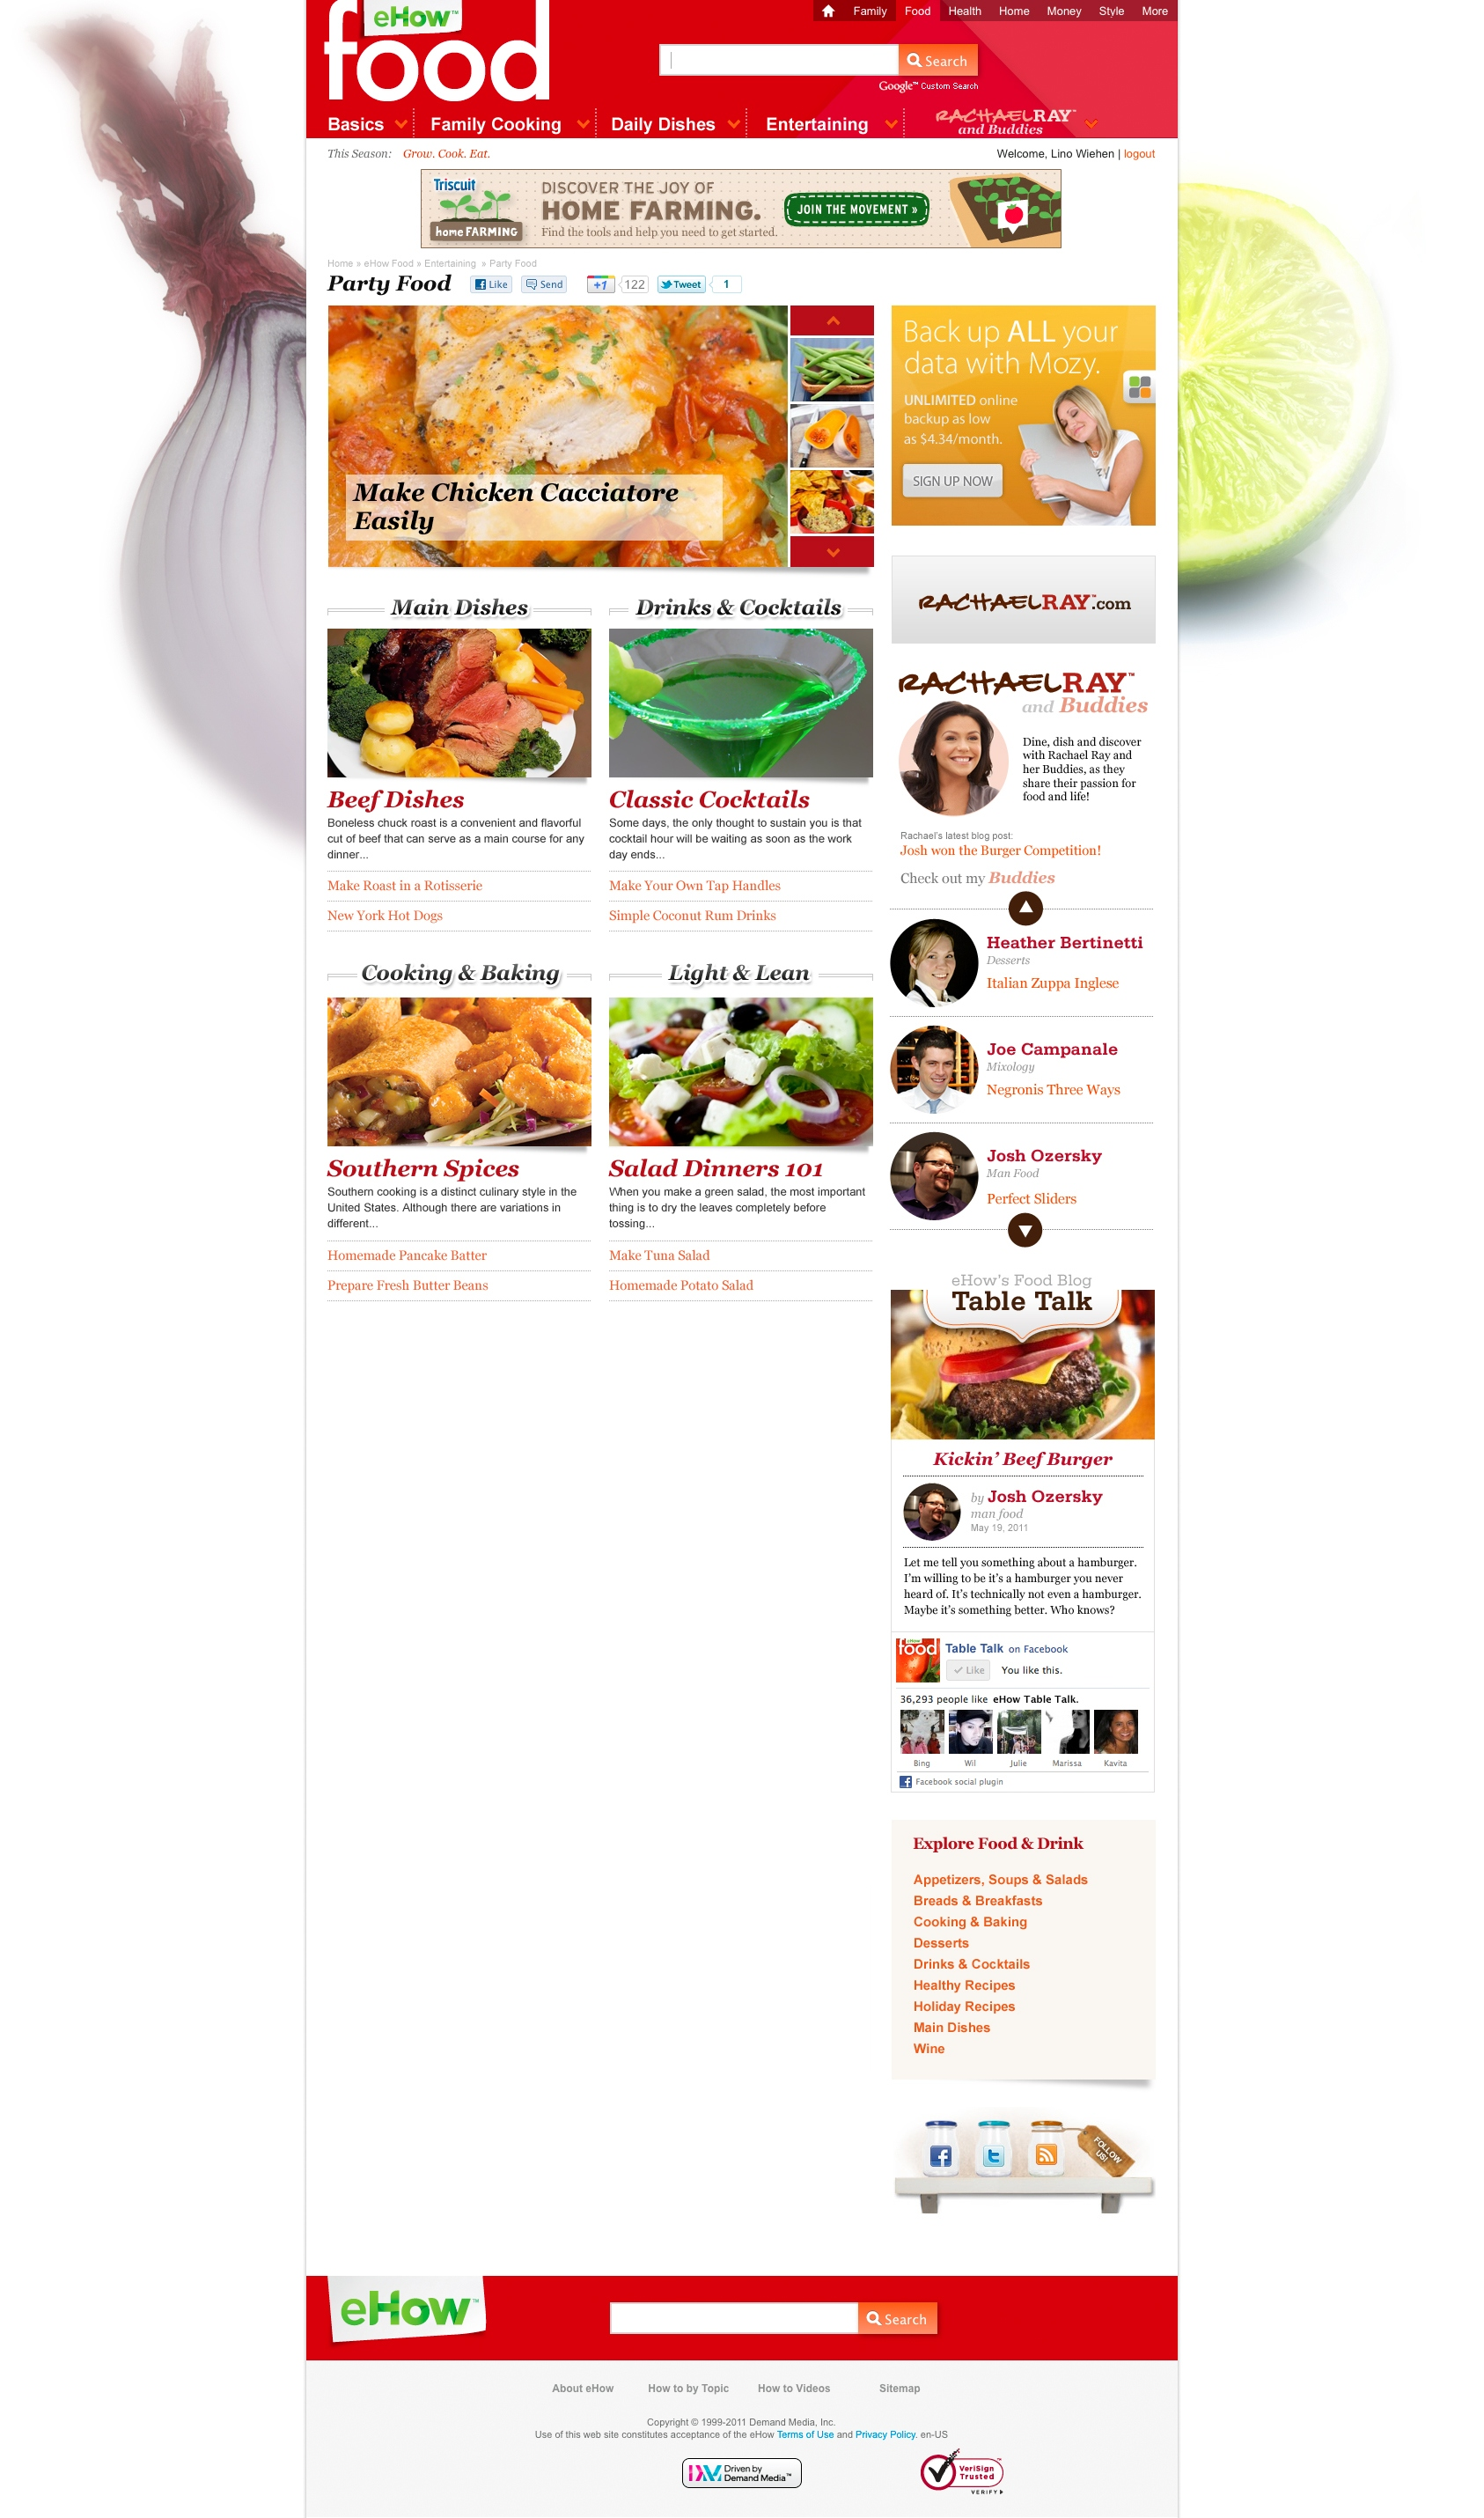 02_Rachael_RAY_NAV_PAGES.jpg